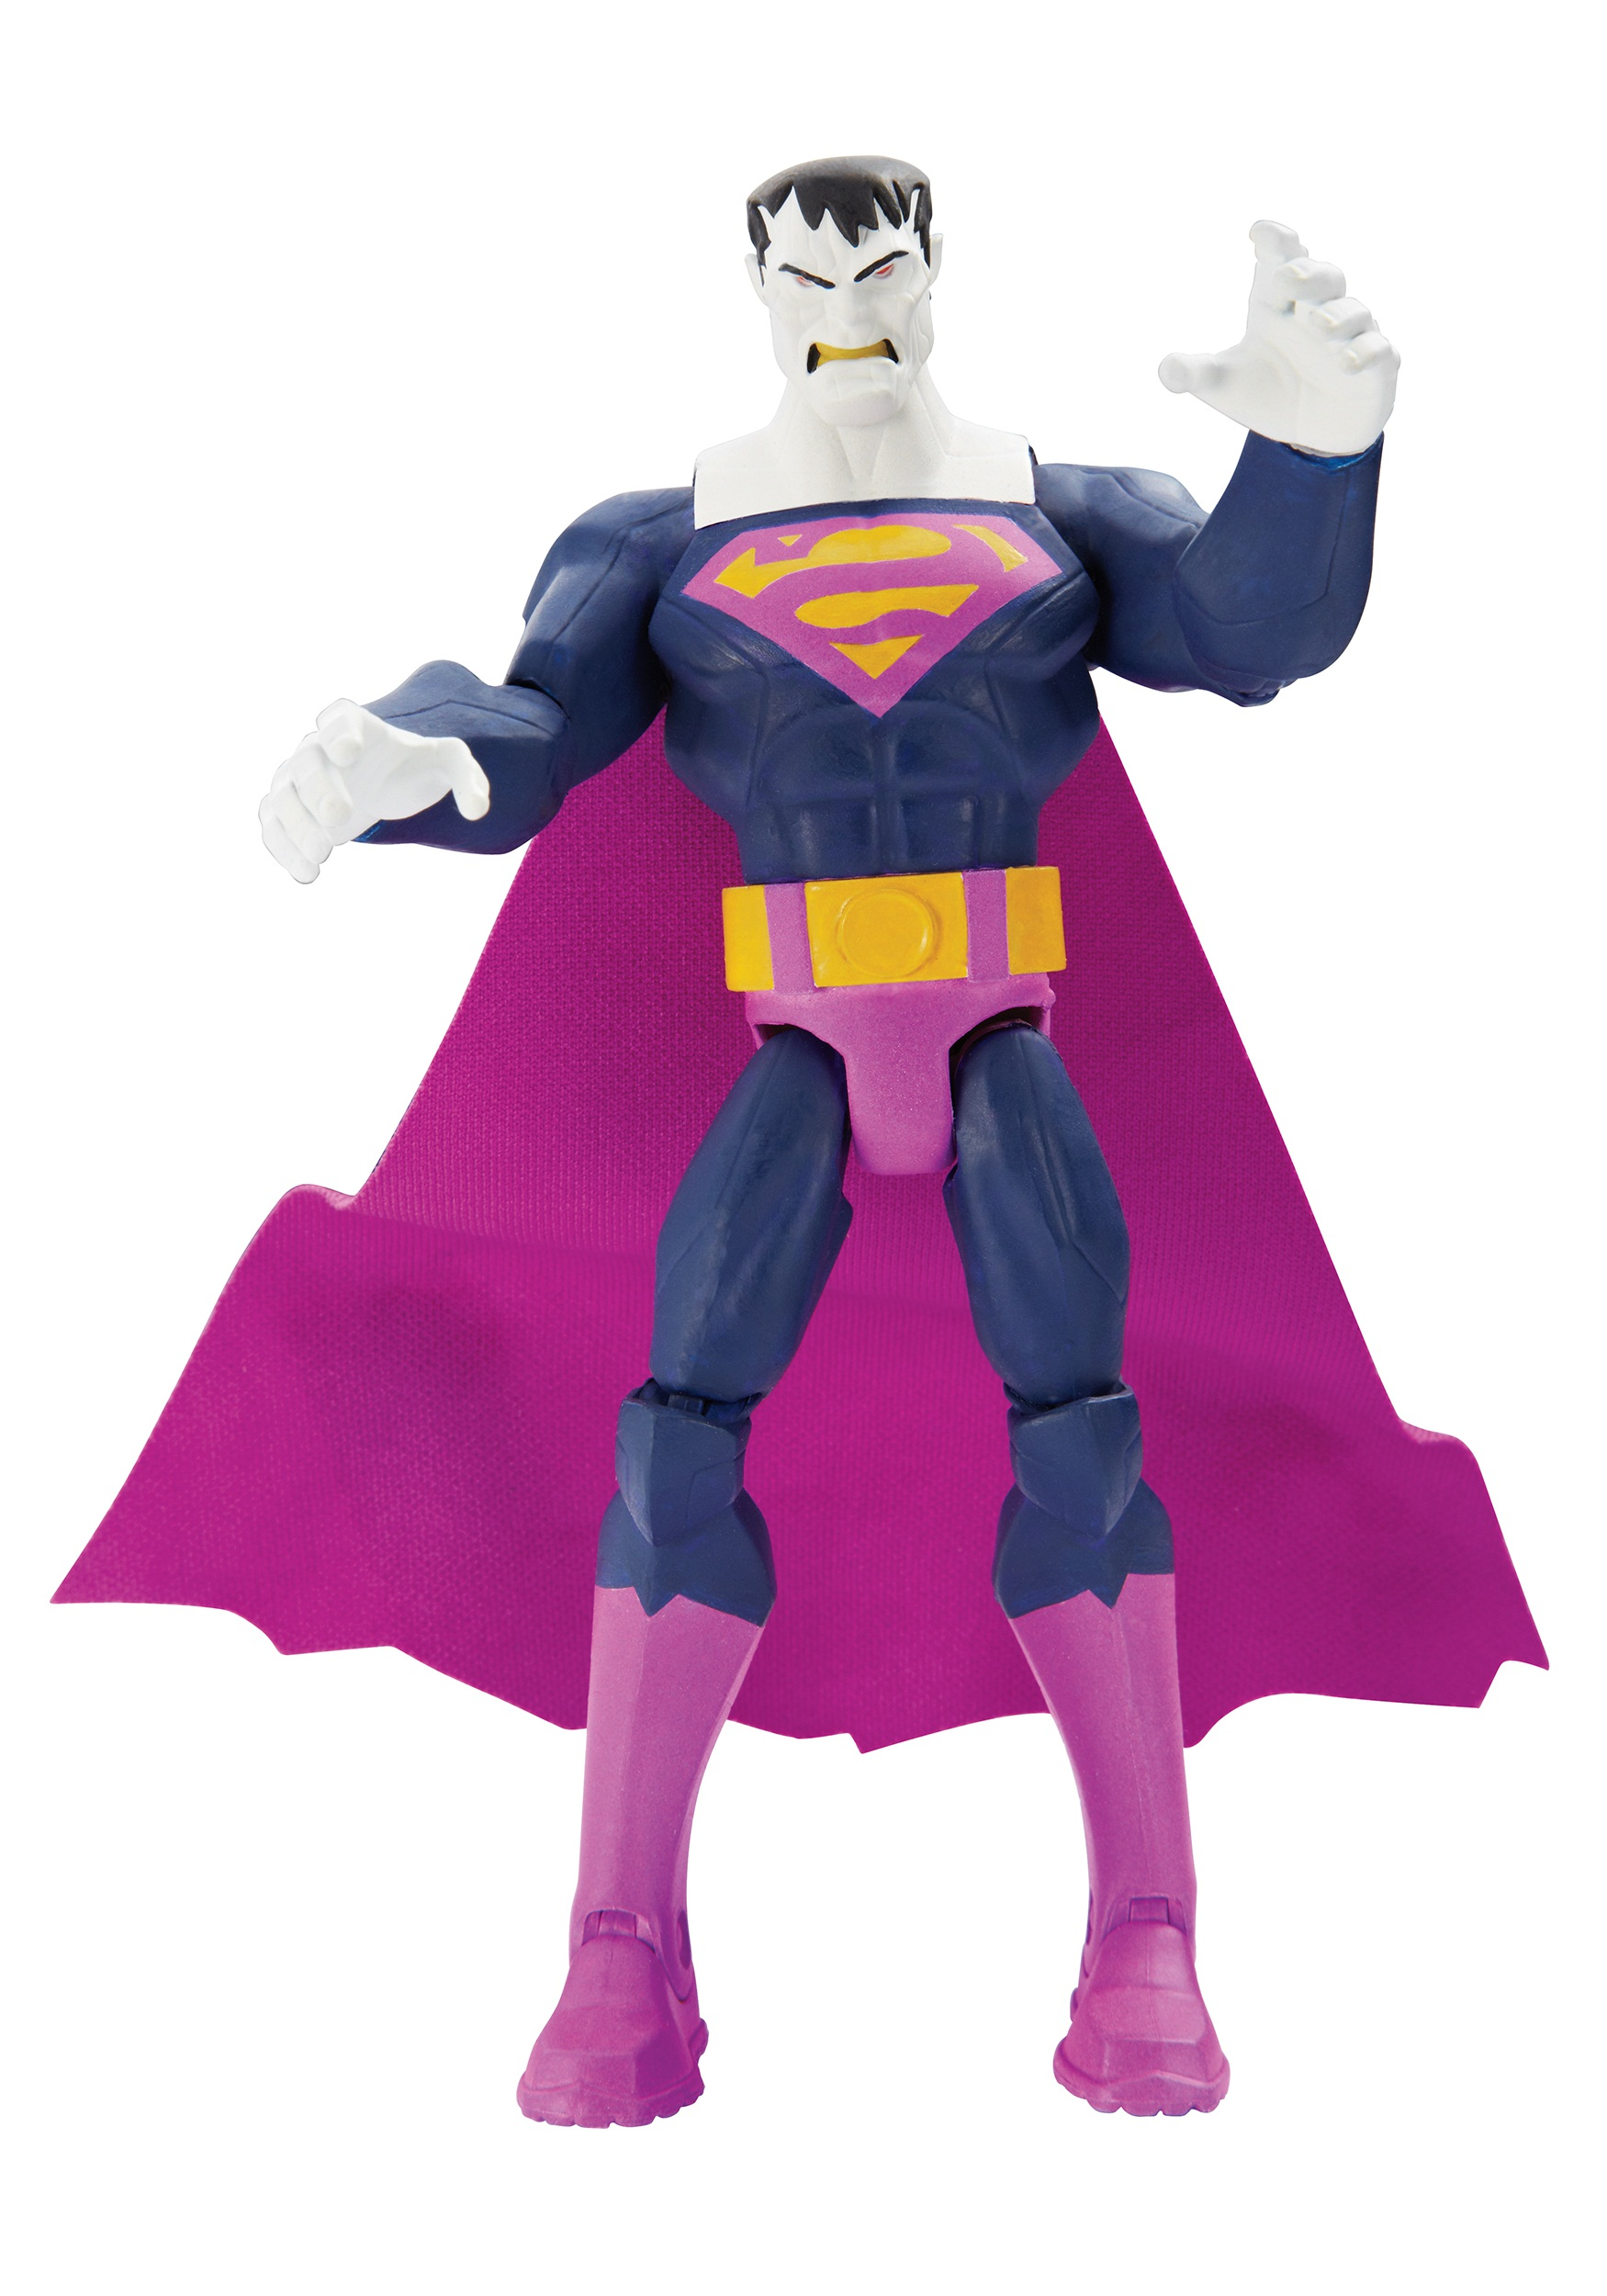 Total Heroes Bizarro Action Figure MLBHD55